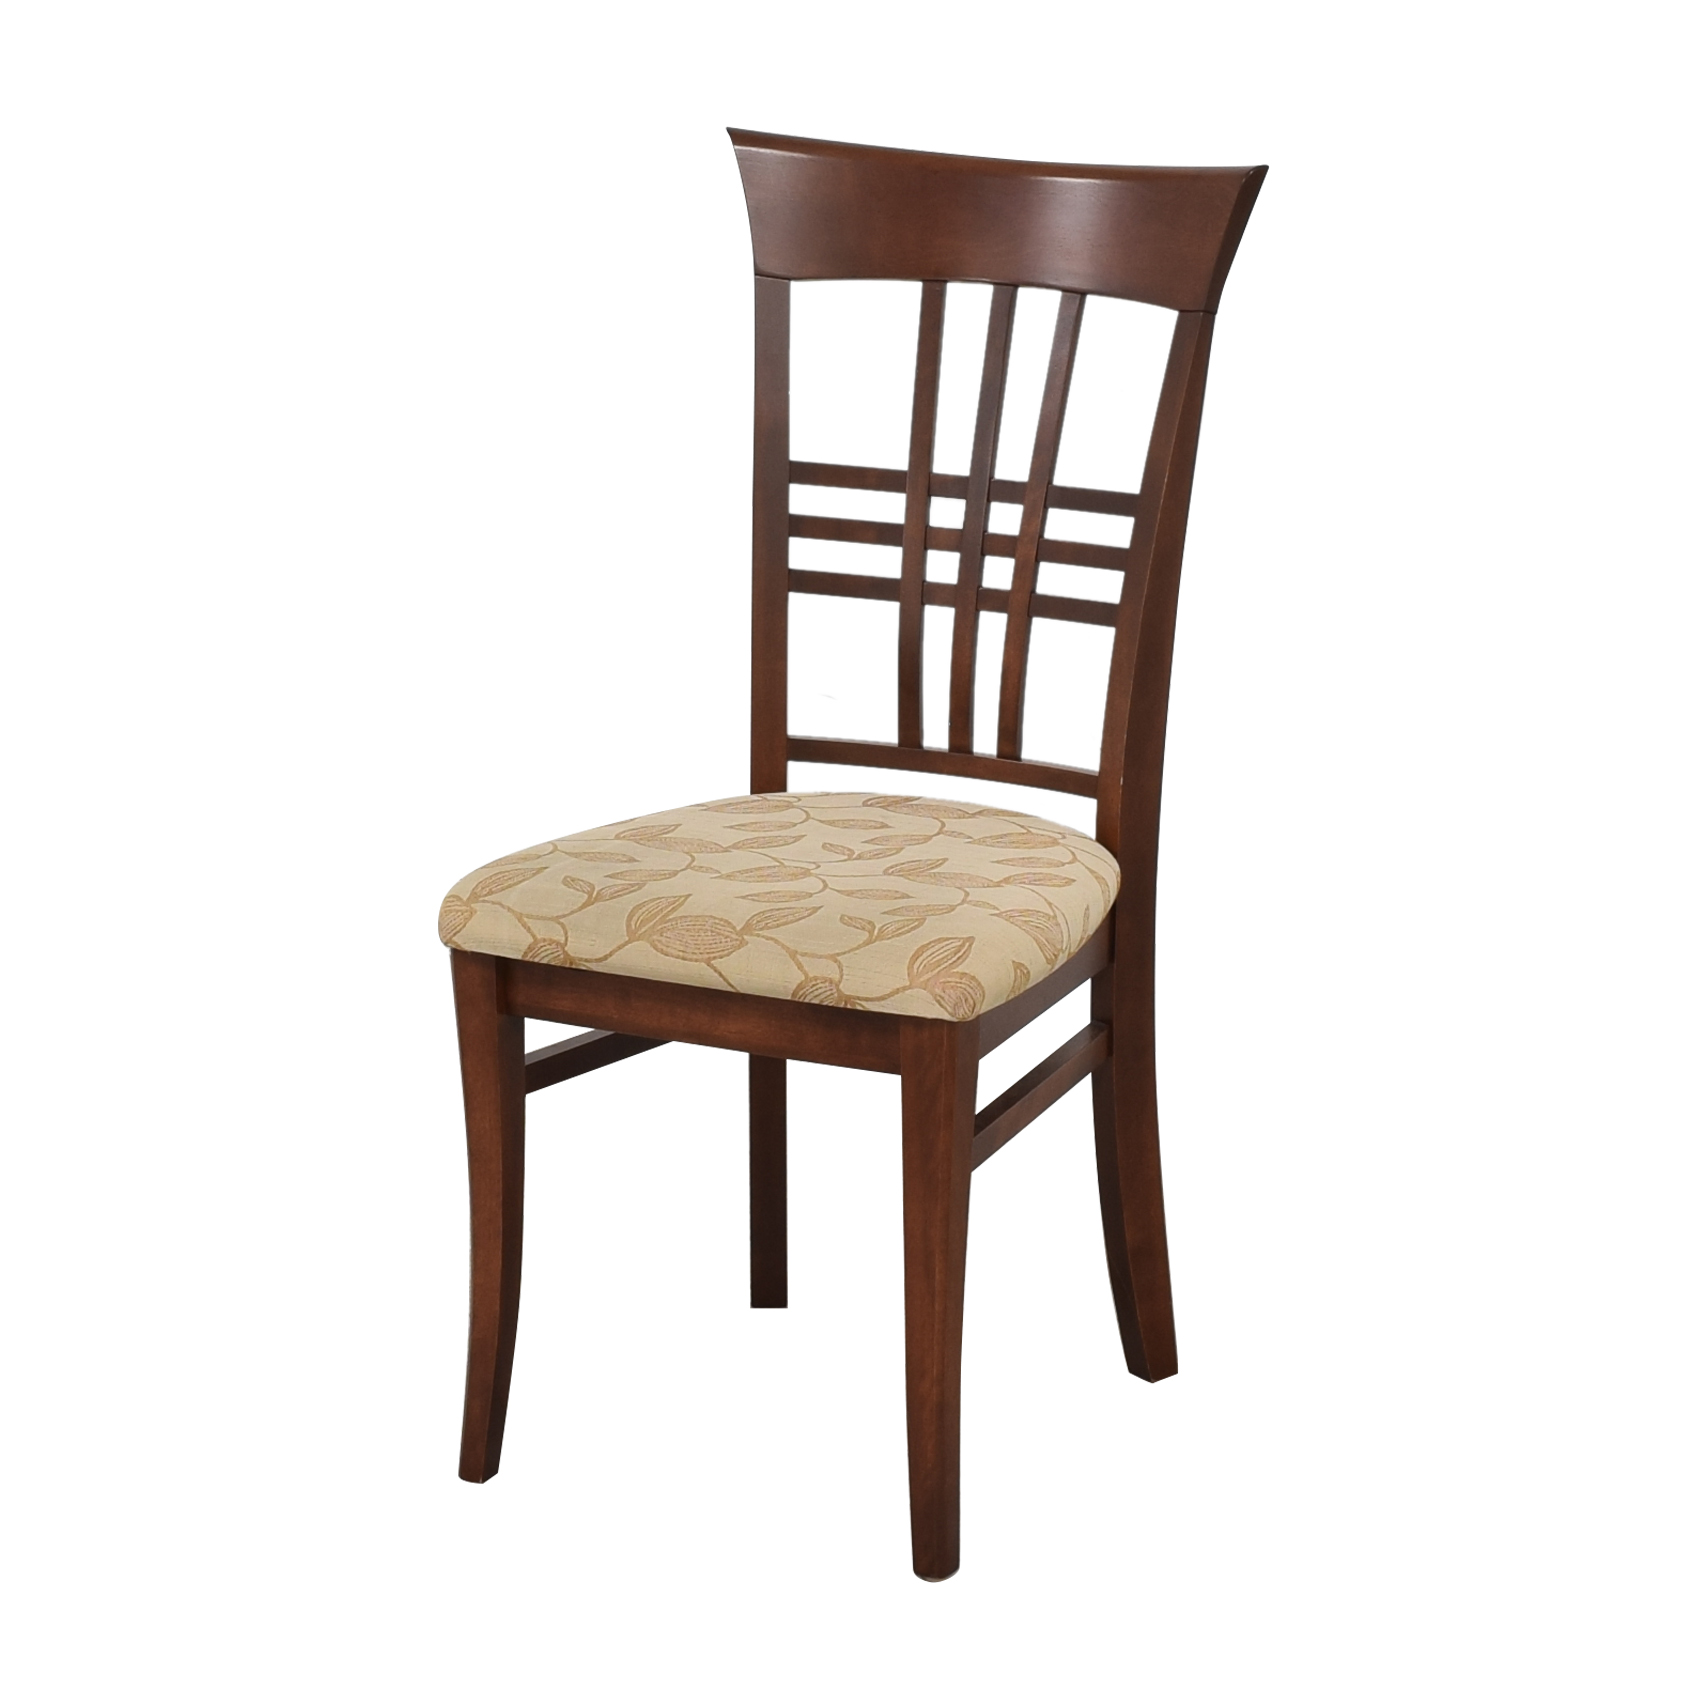 Thomasville Dining Side Chairs / Chairs